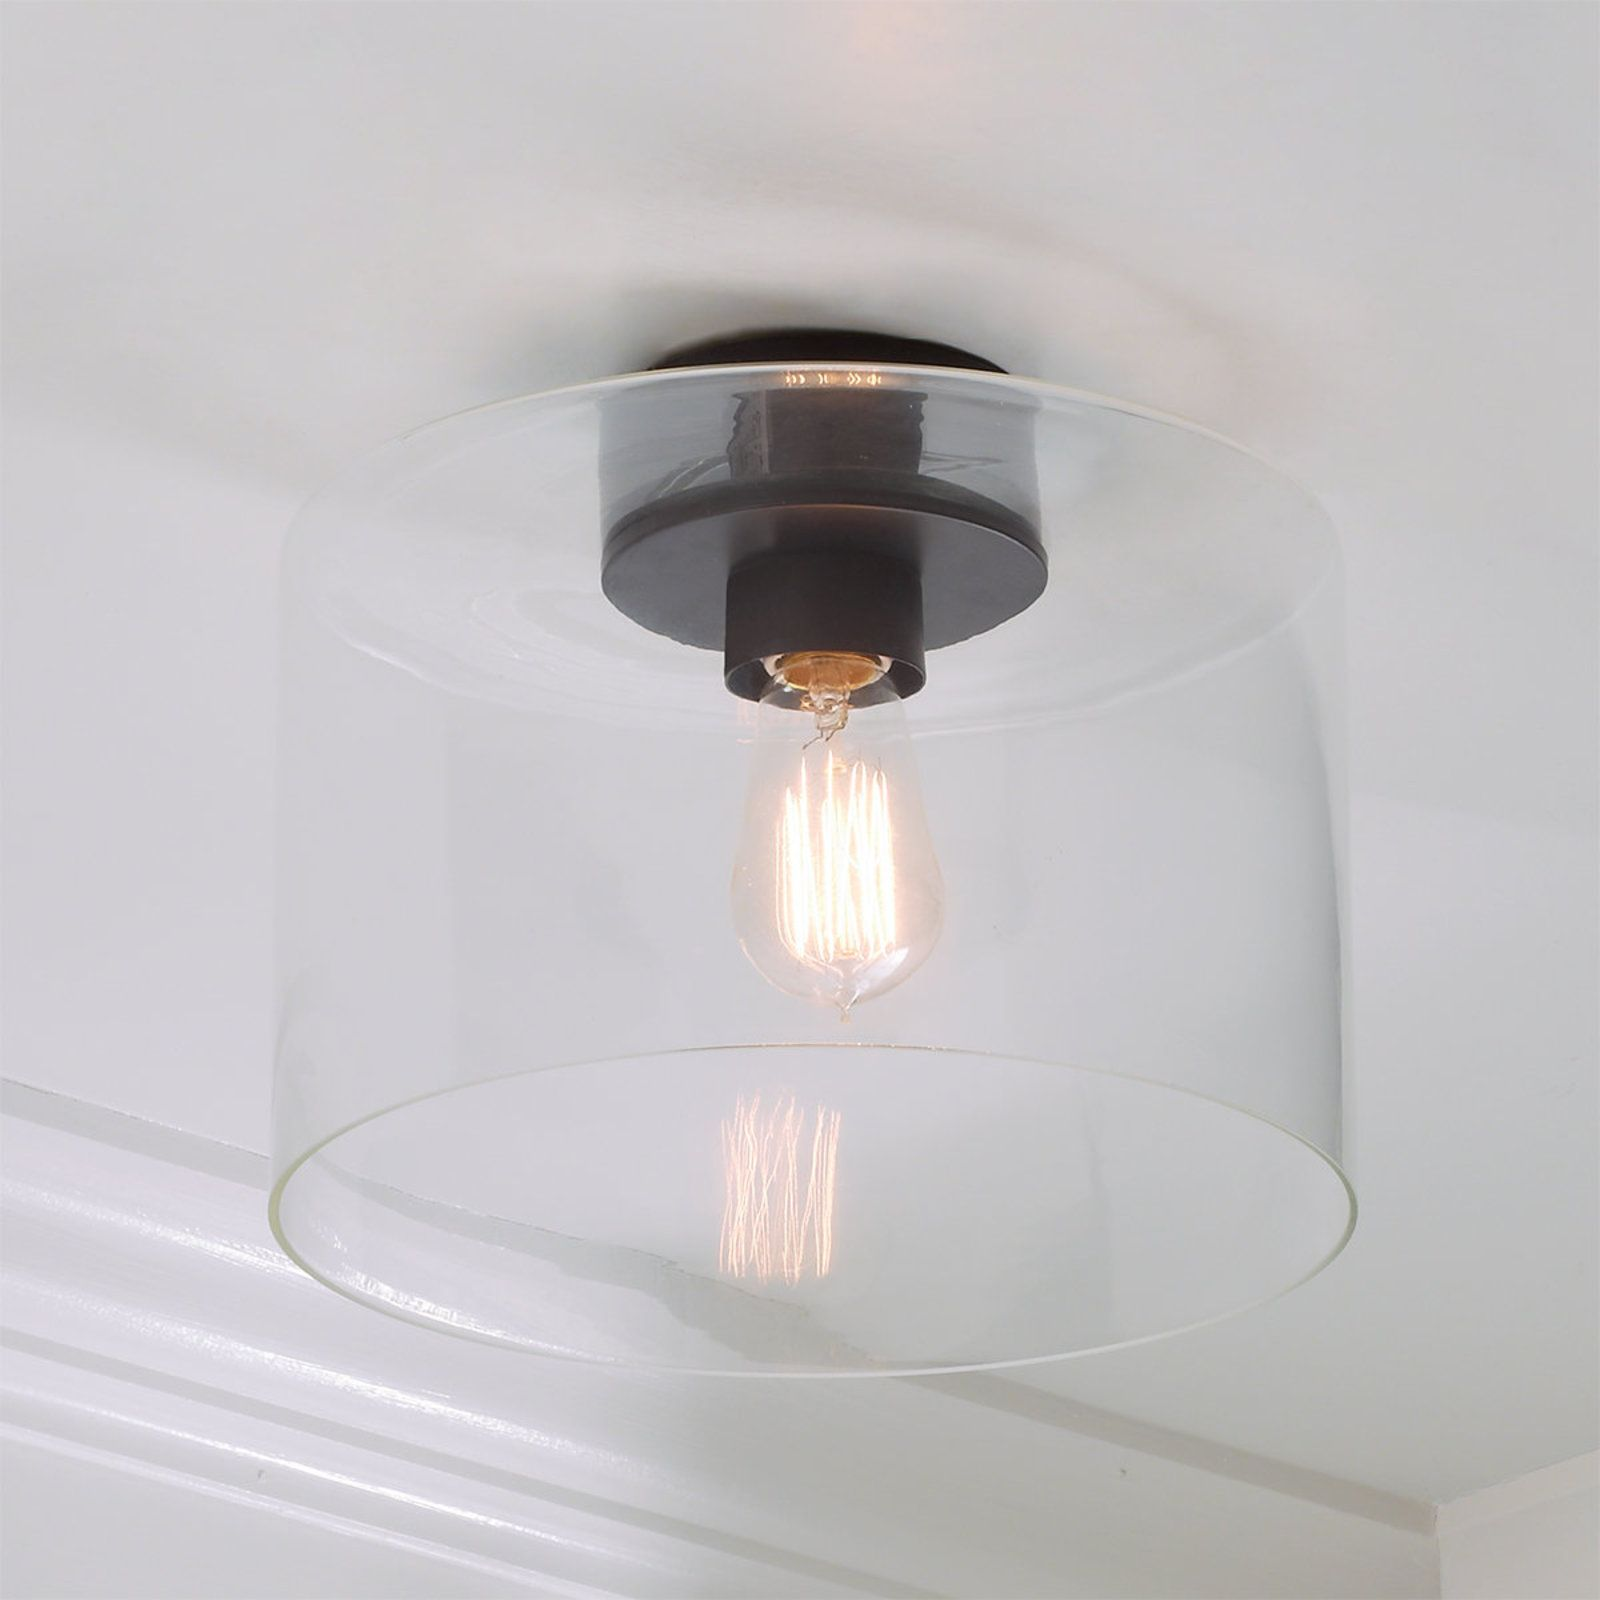 Simple Glass Ceiling Light